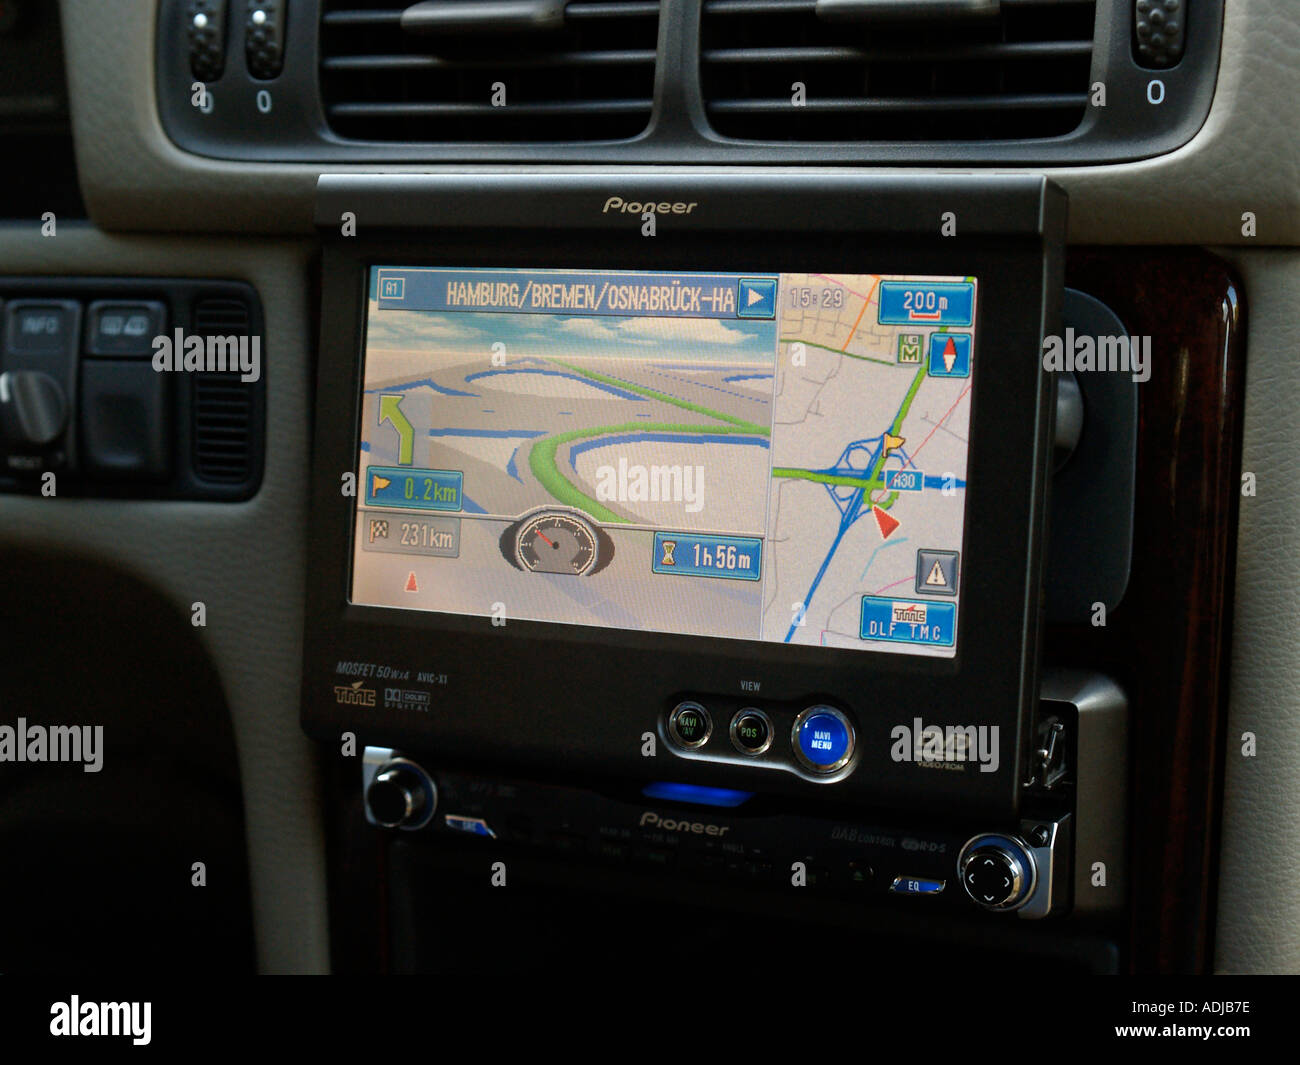 Traffic radio pioneer retractable dvd in car gps navigation system showing a highway near hamburg germany on screen